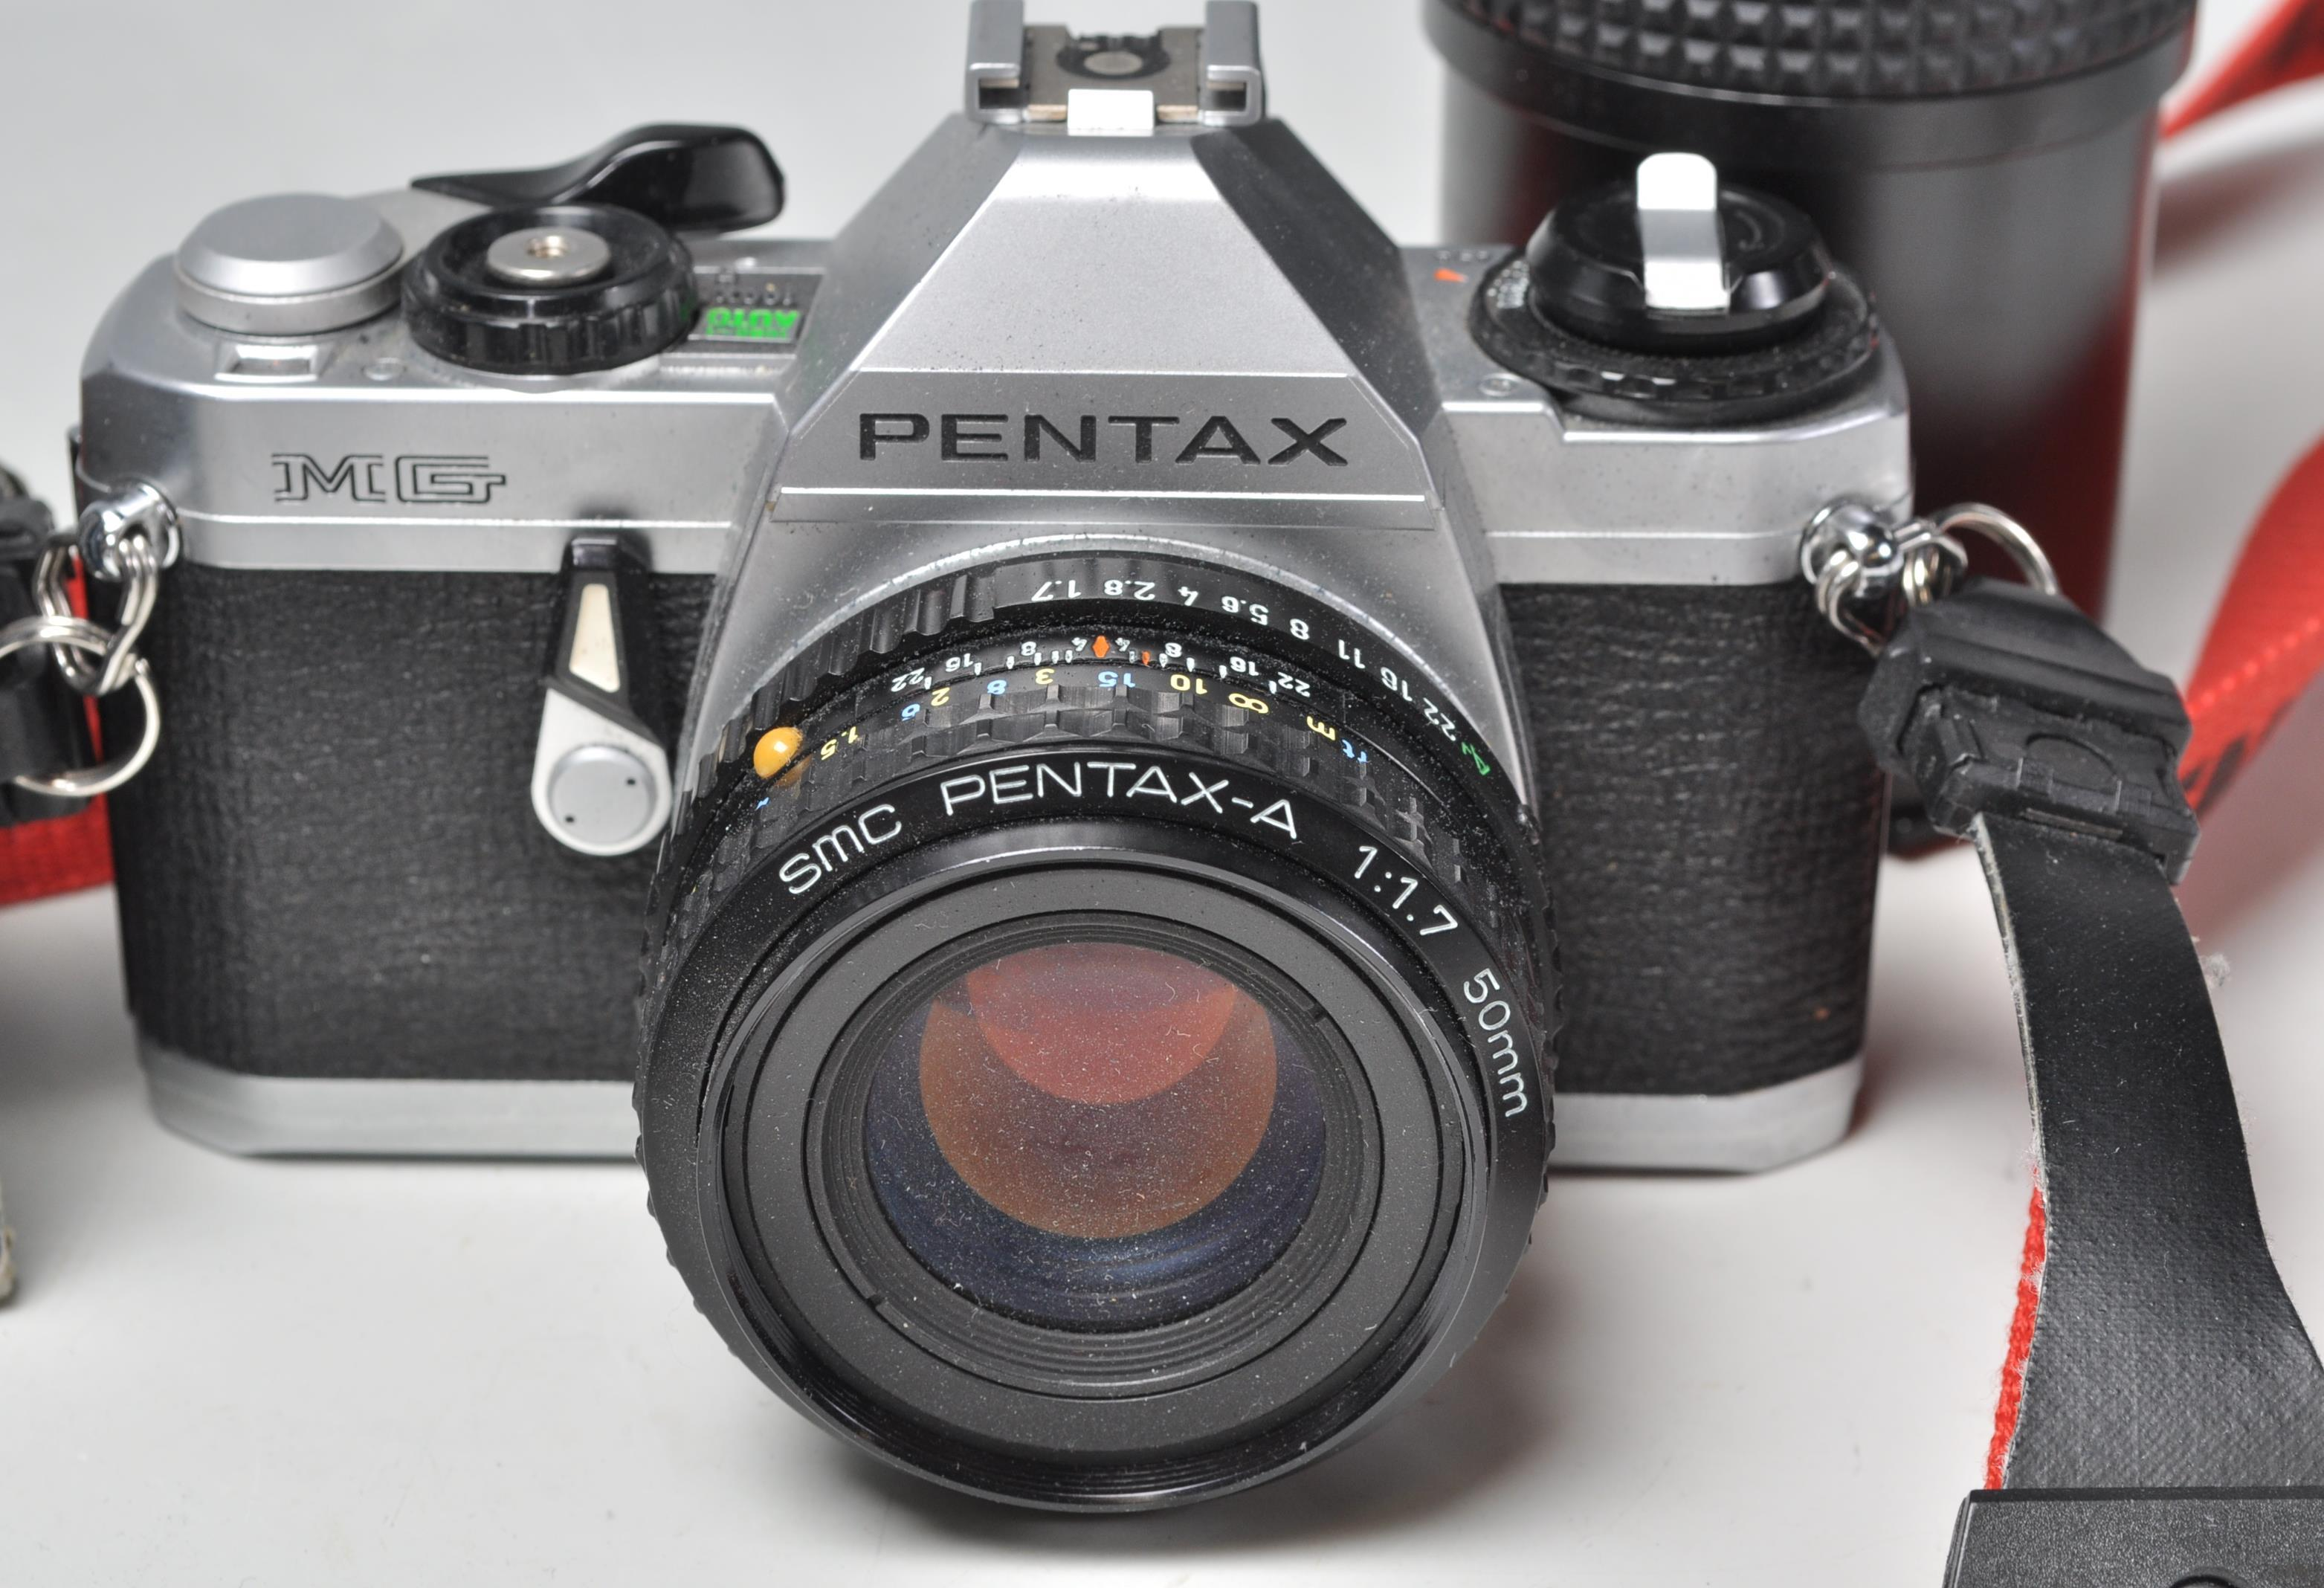 Lot 315 - A Pentax MG SLR film camera with a Pentax-A 50mm lens, a Bell & Howell Skylight 52mm lens, Vivitar